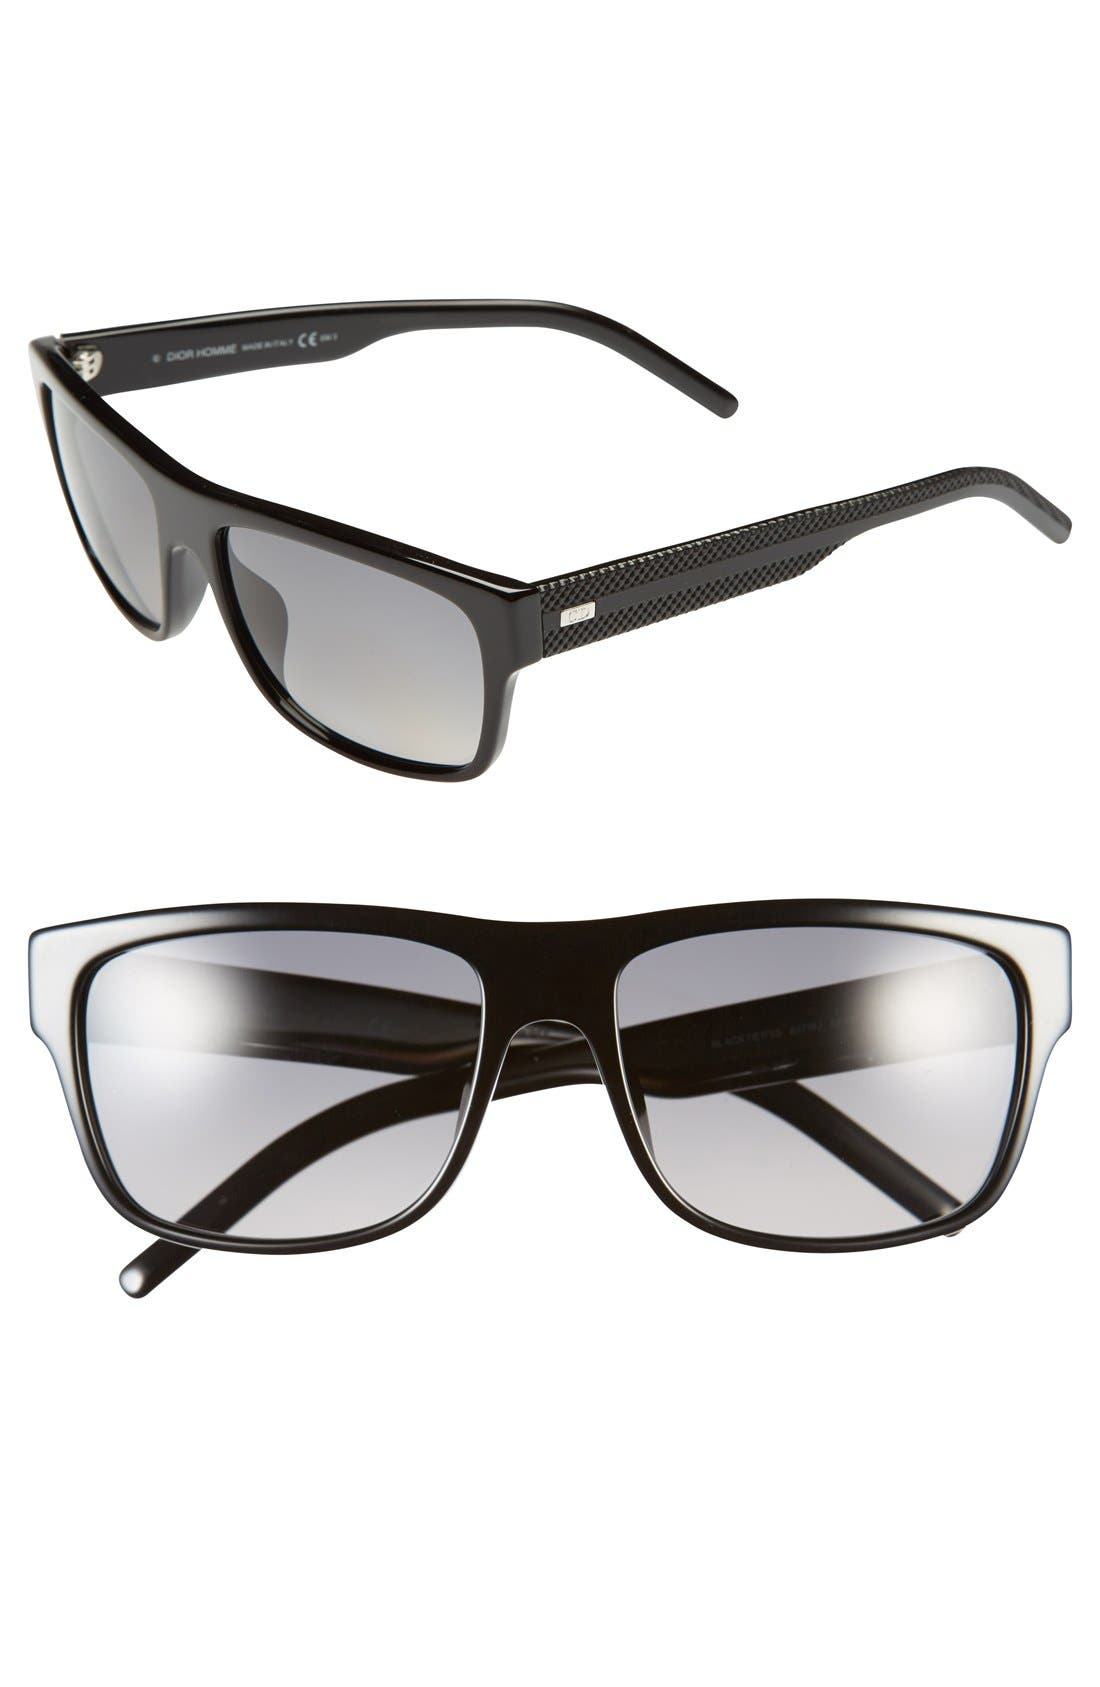 Main Image - Dior Homme 57mm Polarized Sunglasses